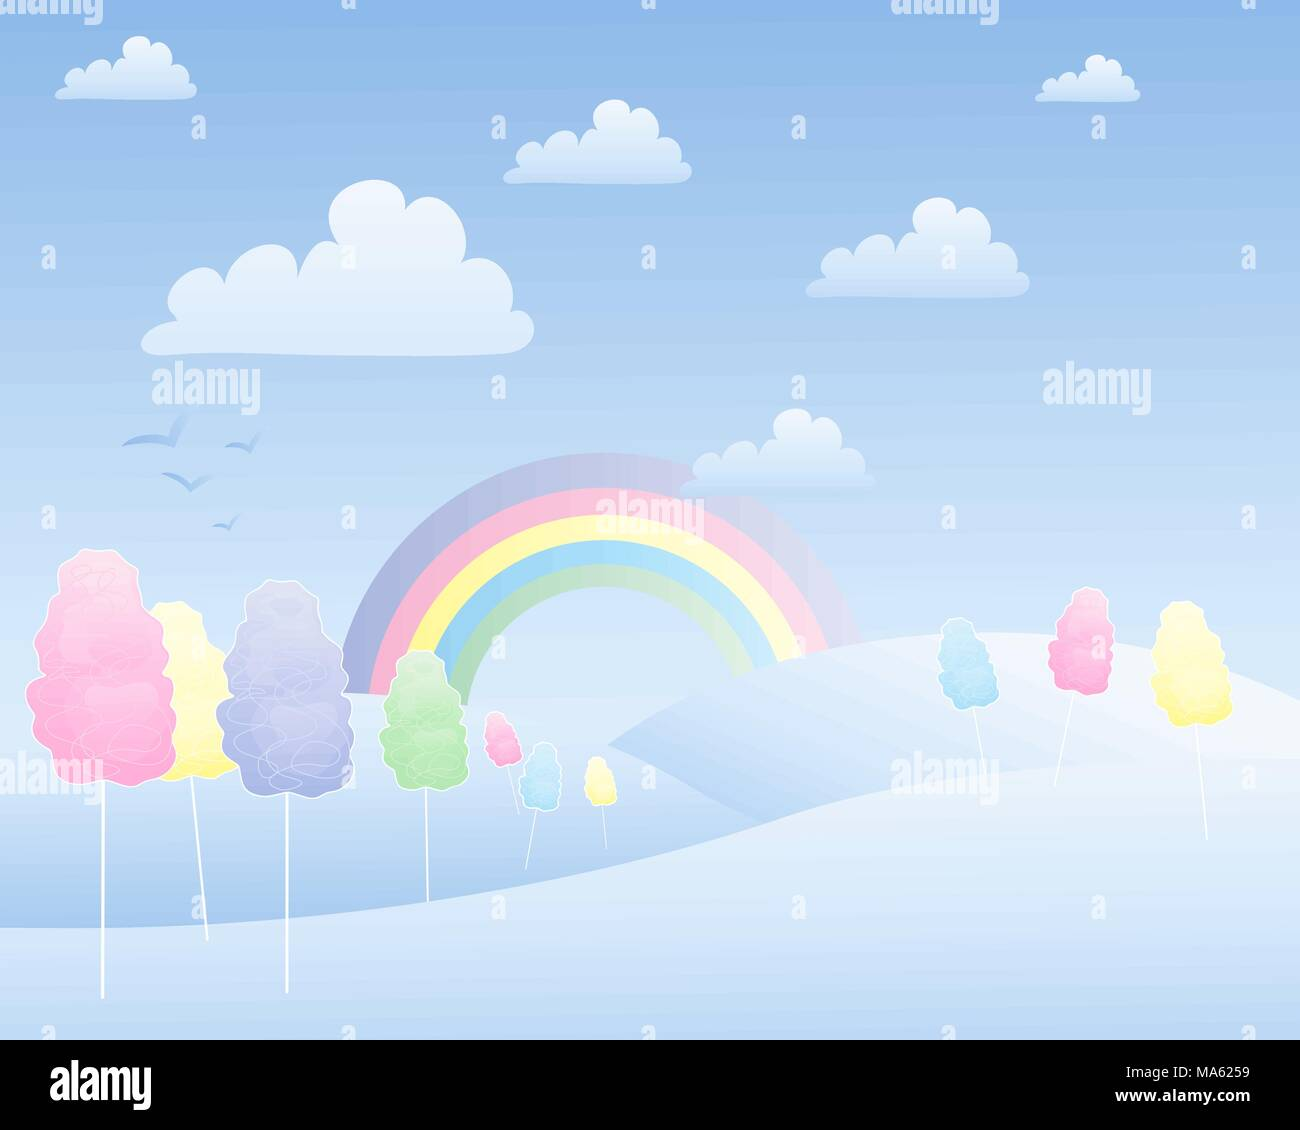 a vector illustration in eps 10 format of a fantasy cotton candy landscape with a rainbow hills and fluffy white clouds - Stock Image